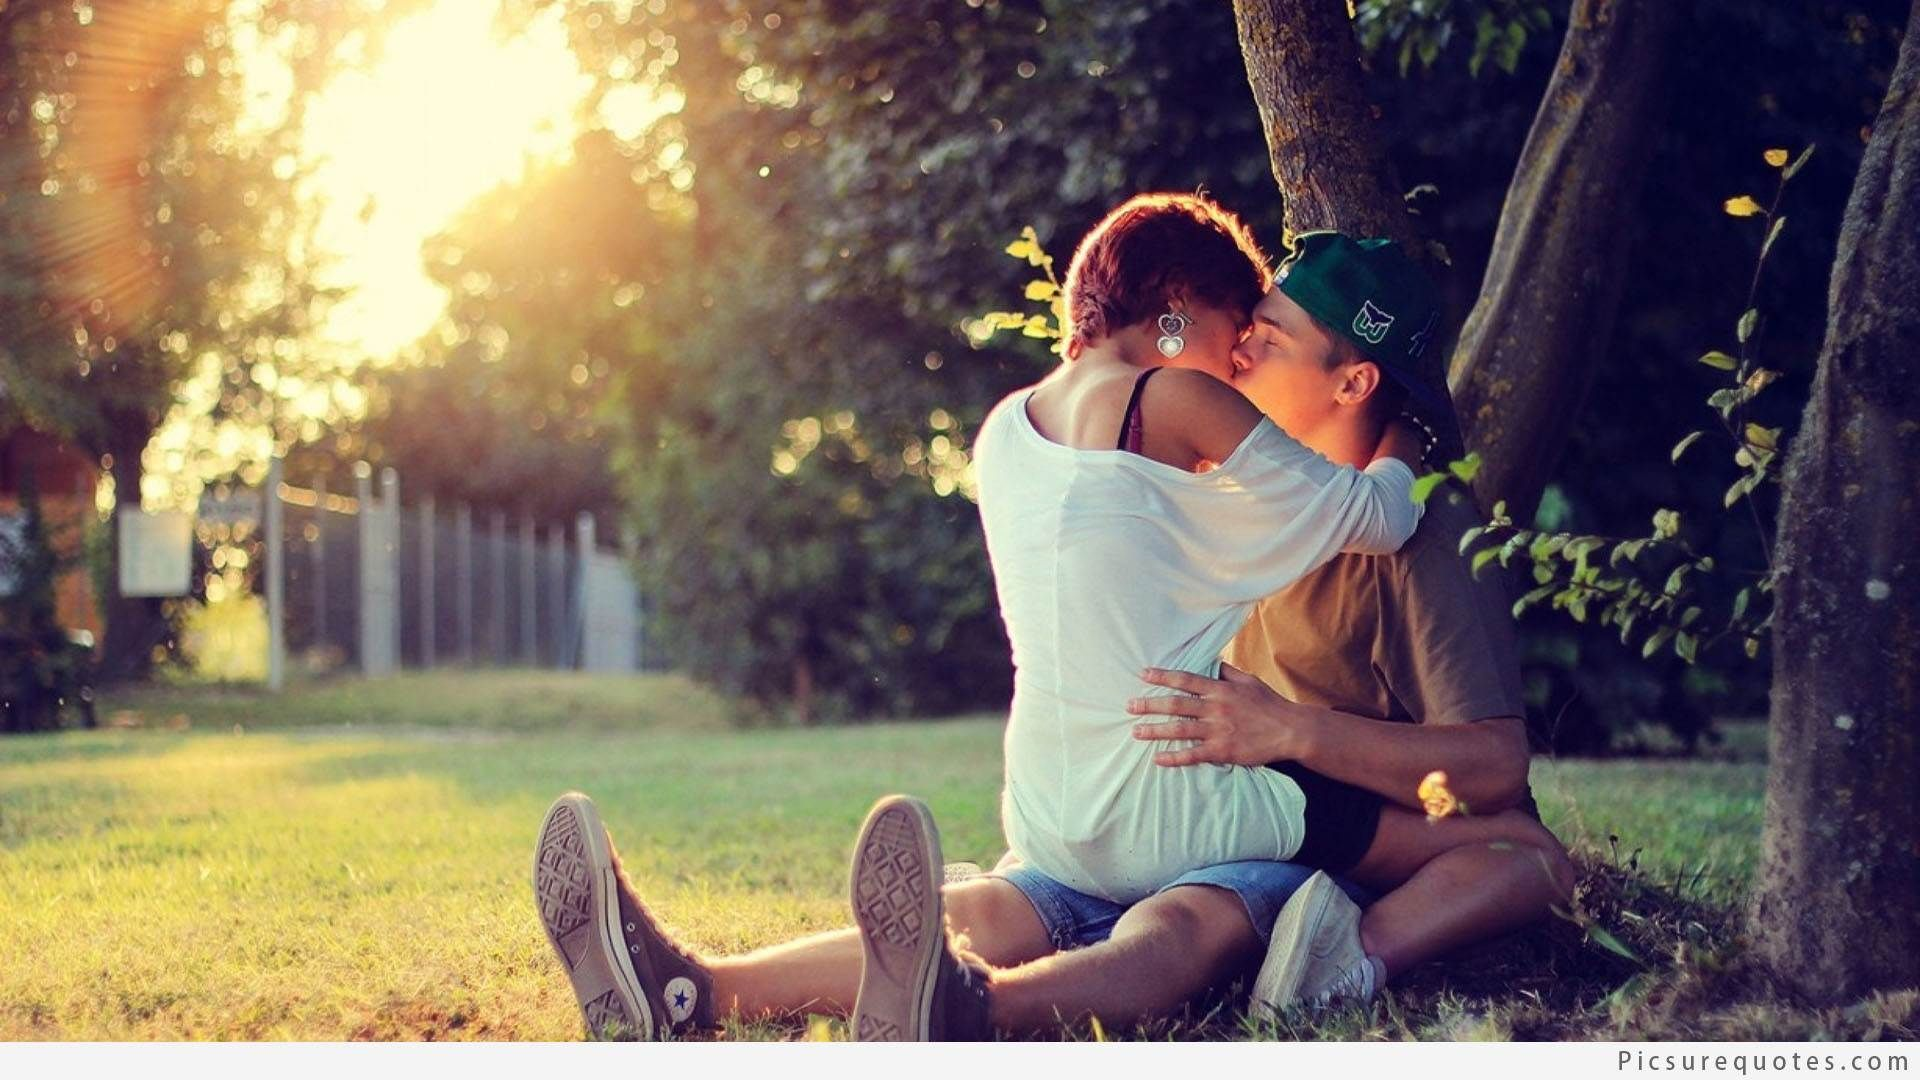 ovando hindu single women Find local singles on indiandating, an online dating site that makes it fun for single men and women looking for love and romance to find their soulmate.